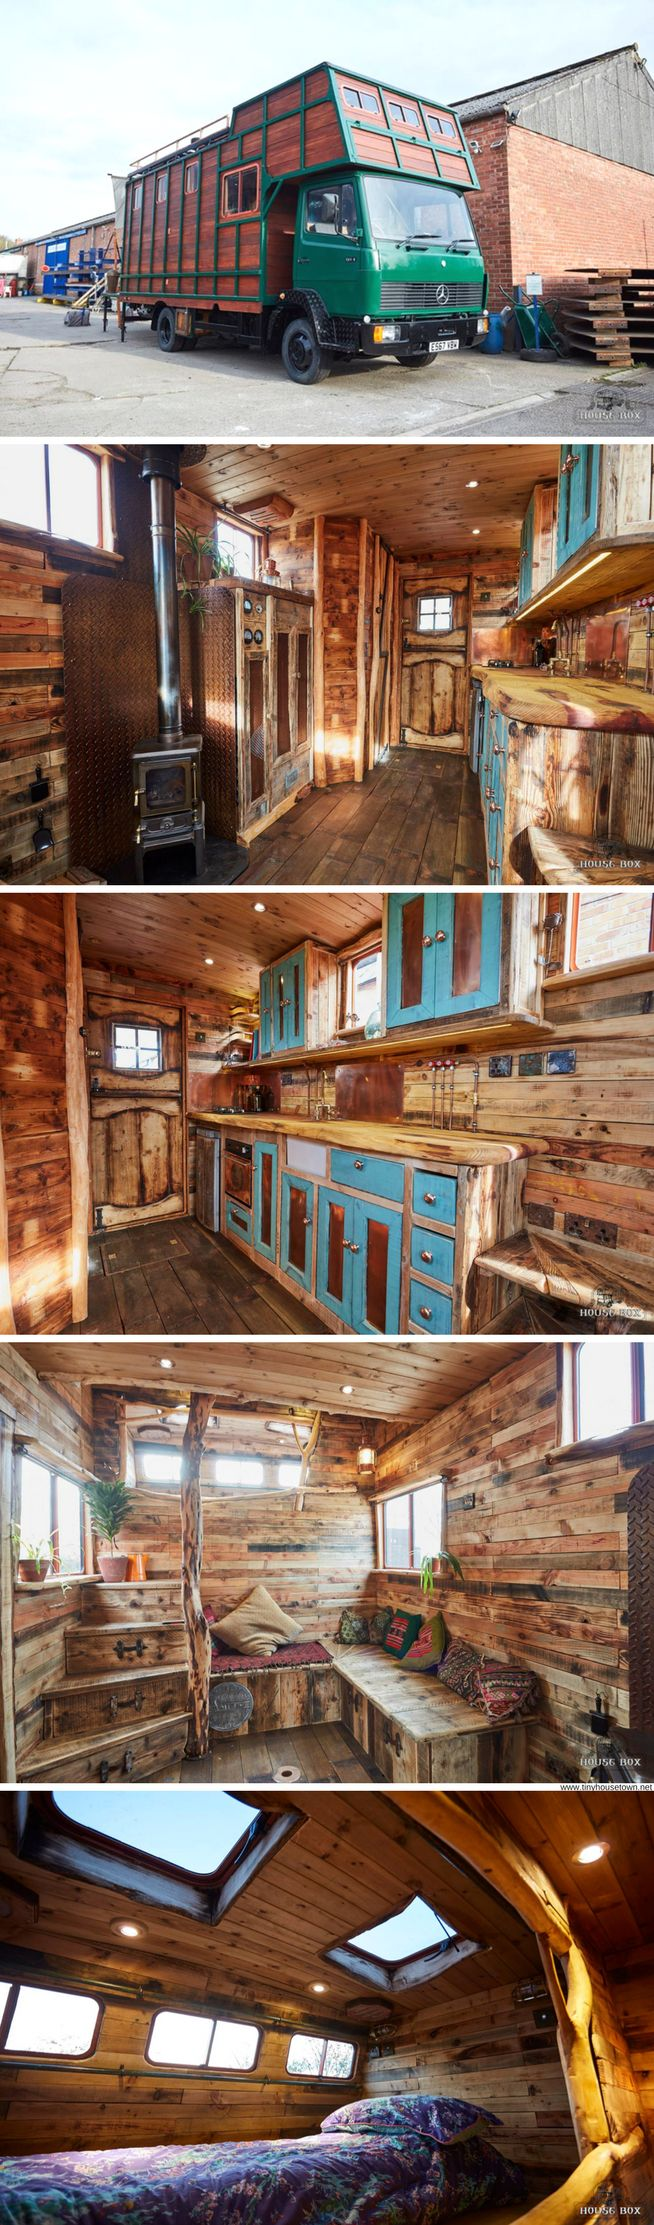 A former horse box transformed into a cozy, rustic tiny house on wheels